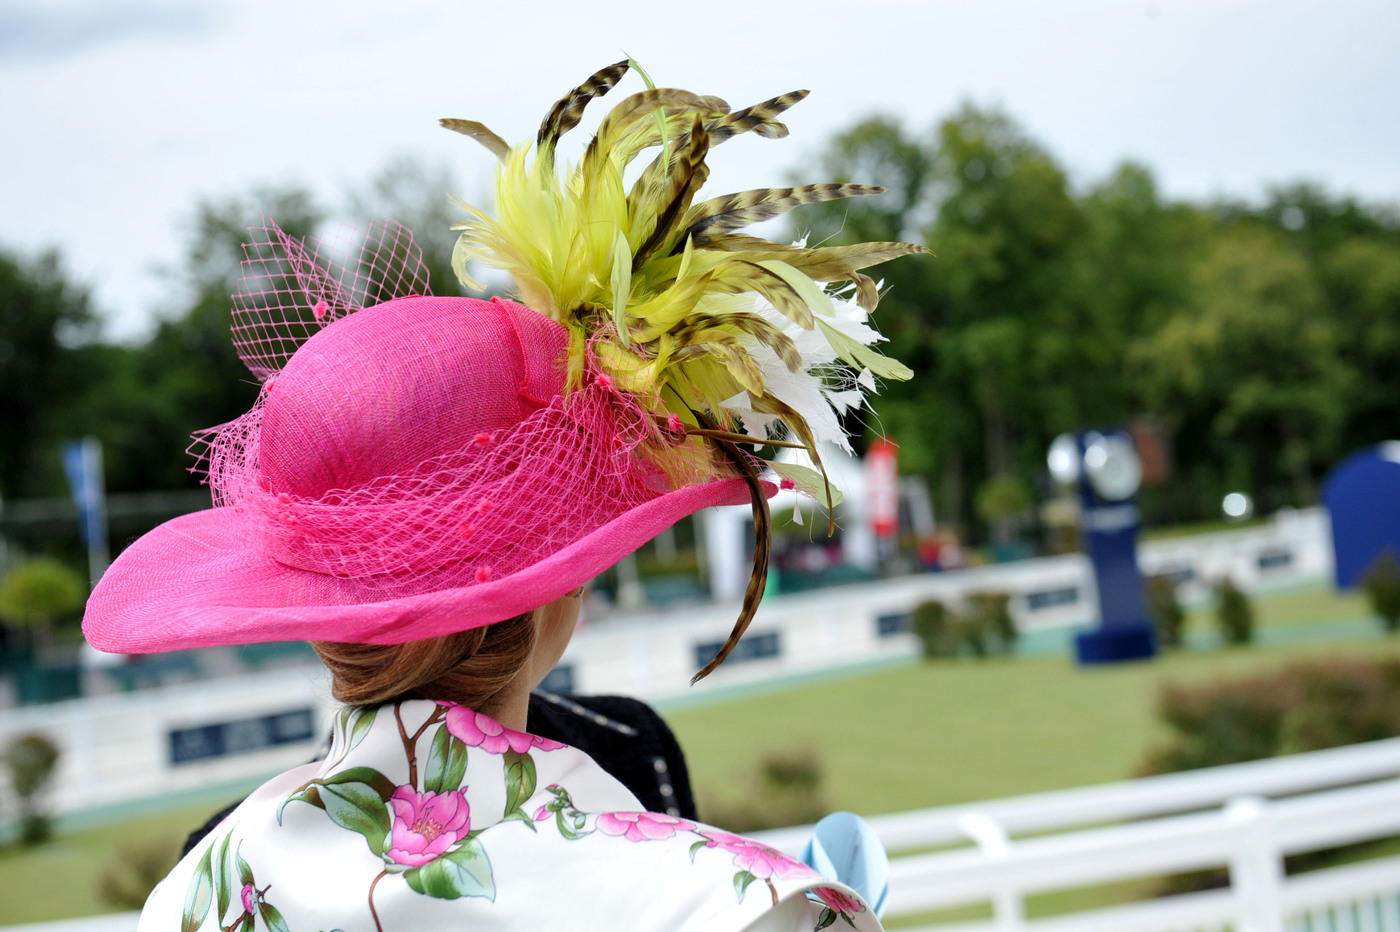 Longines Flat Racing Event: Racing and elegance at the Prix de Diane Longines – Sunday, 17th June 2012 at 4